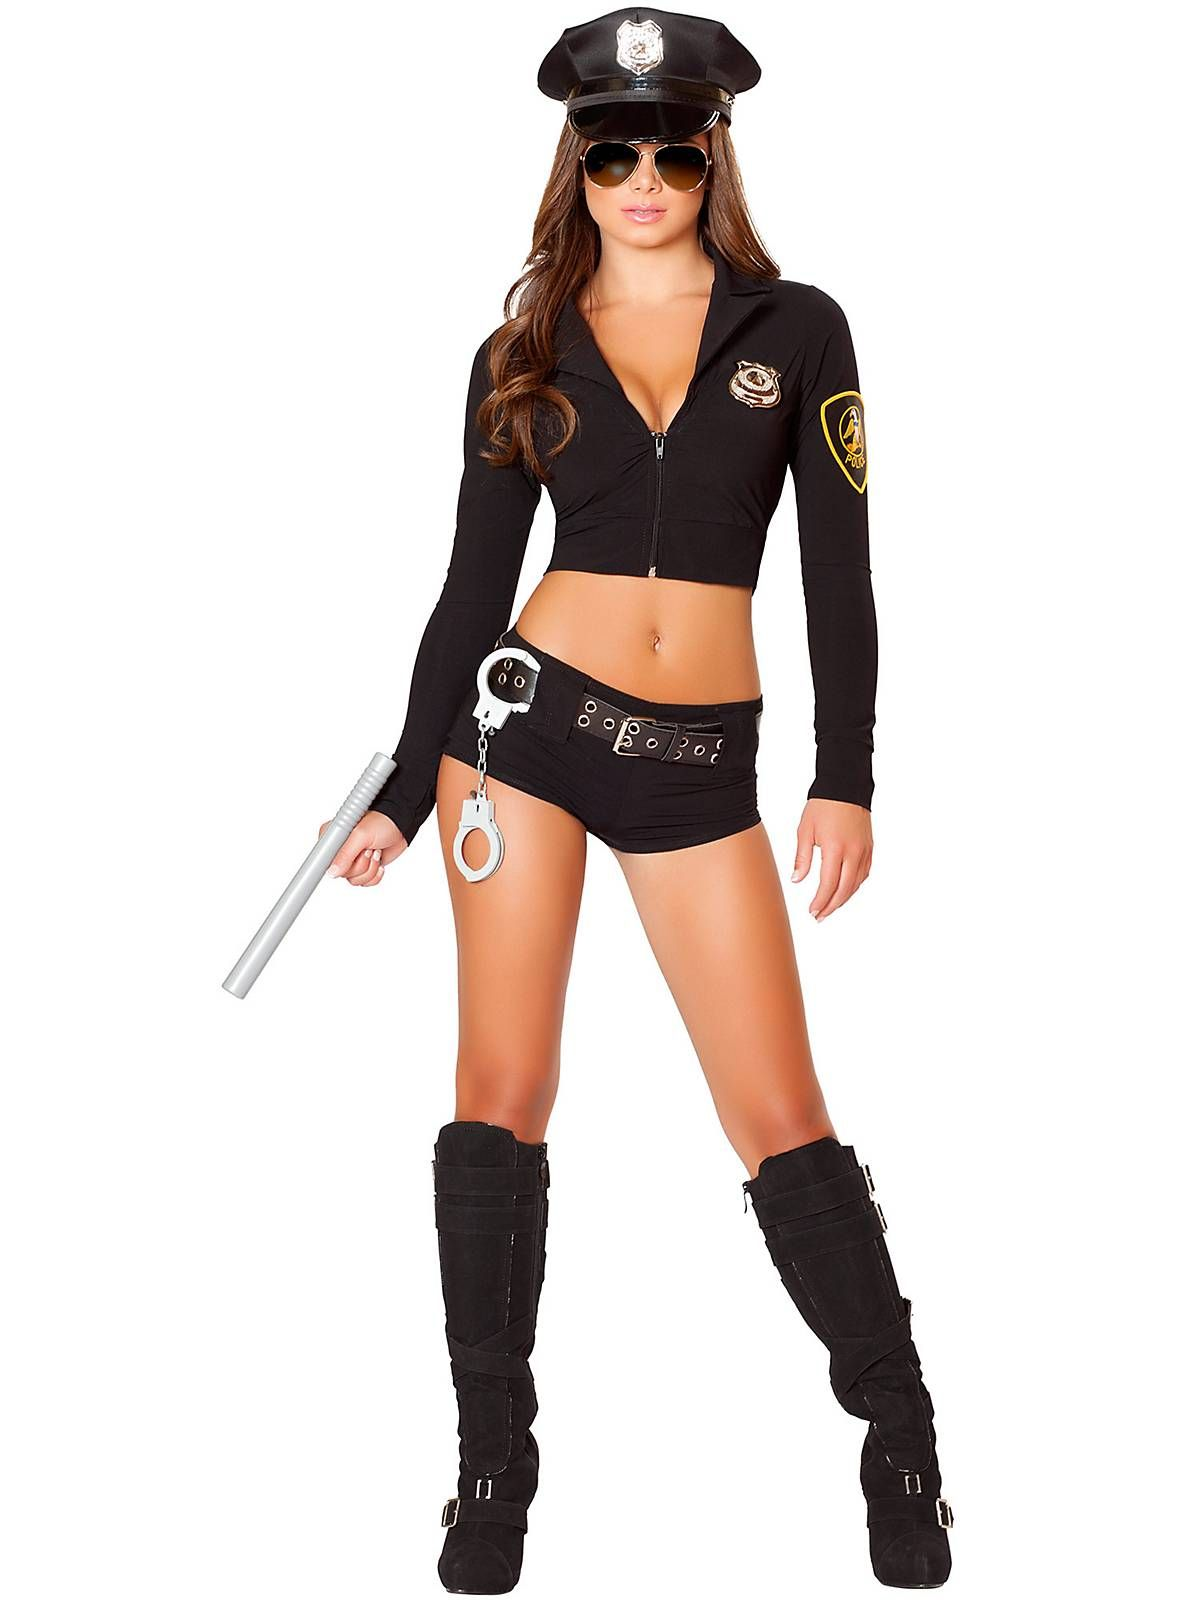 Sexy cop pictures